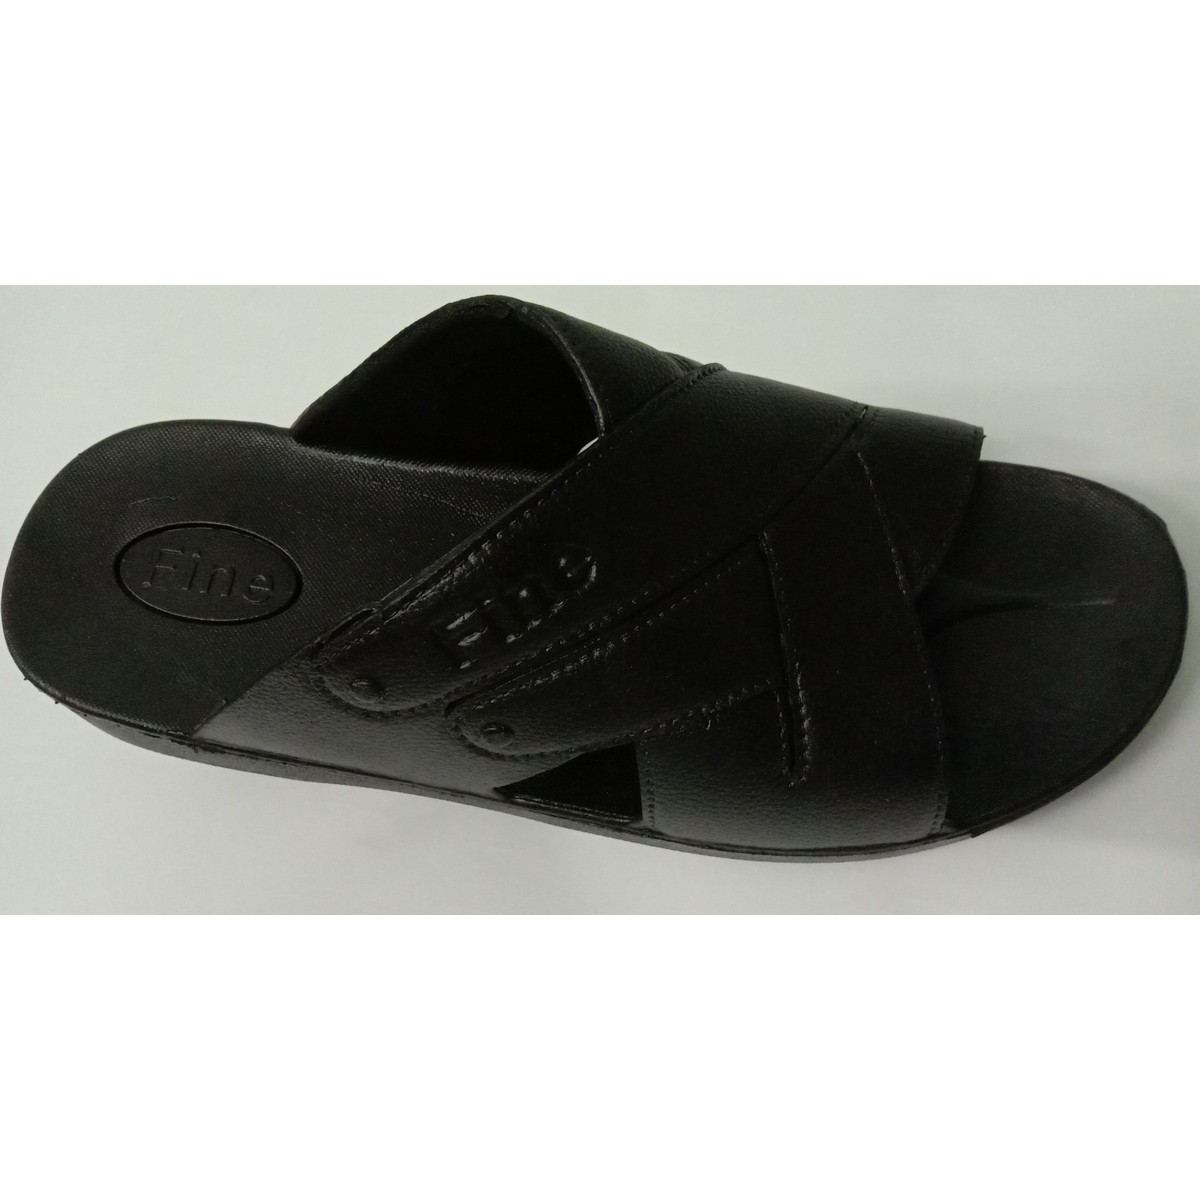 Sleepers, Flip Flop, new fashion design comfortable feeling material reasonable price